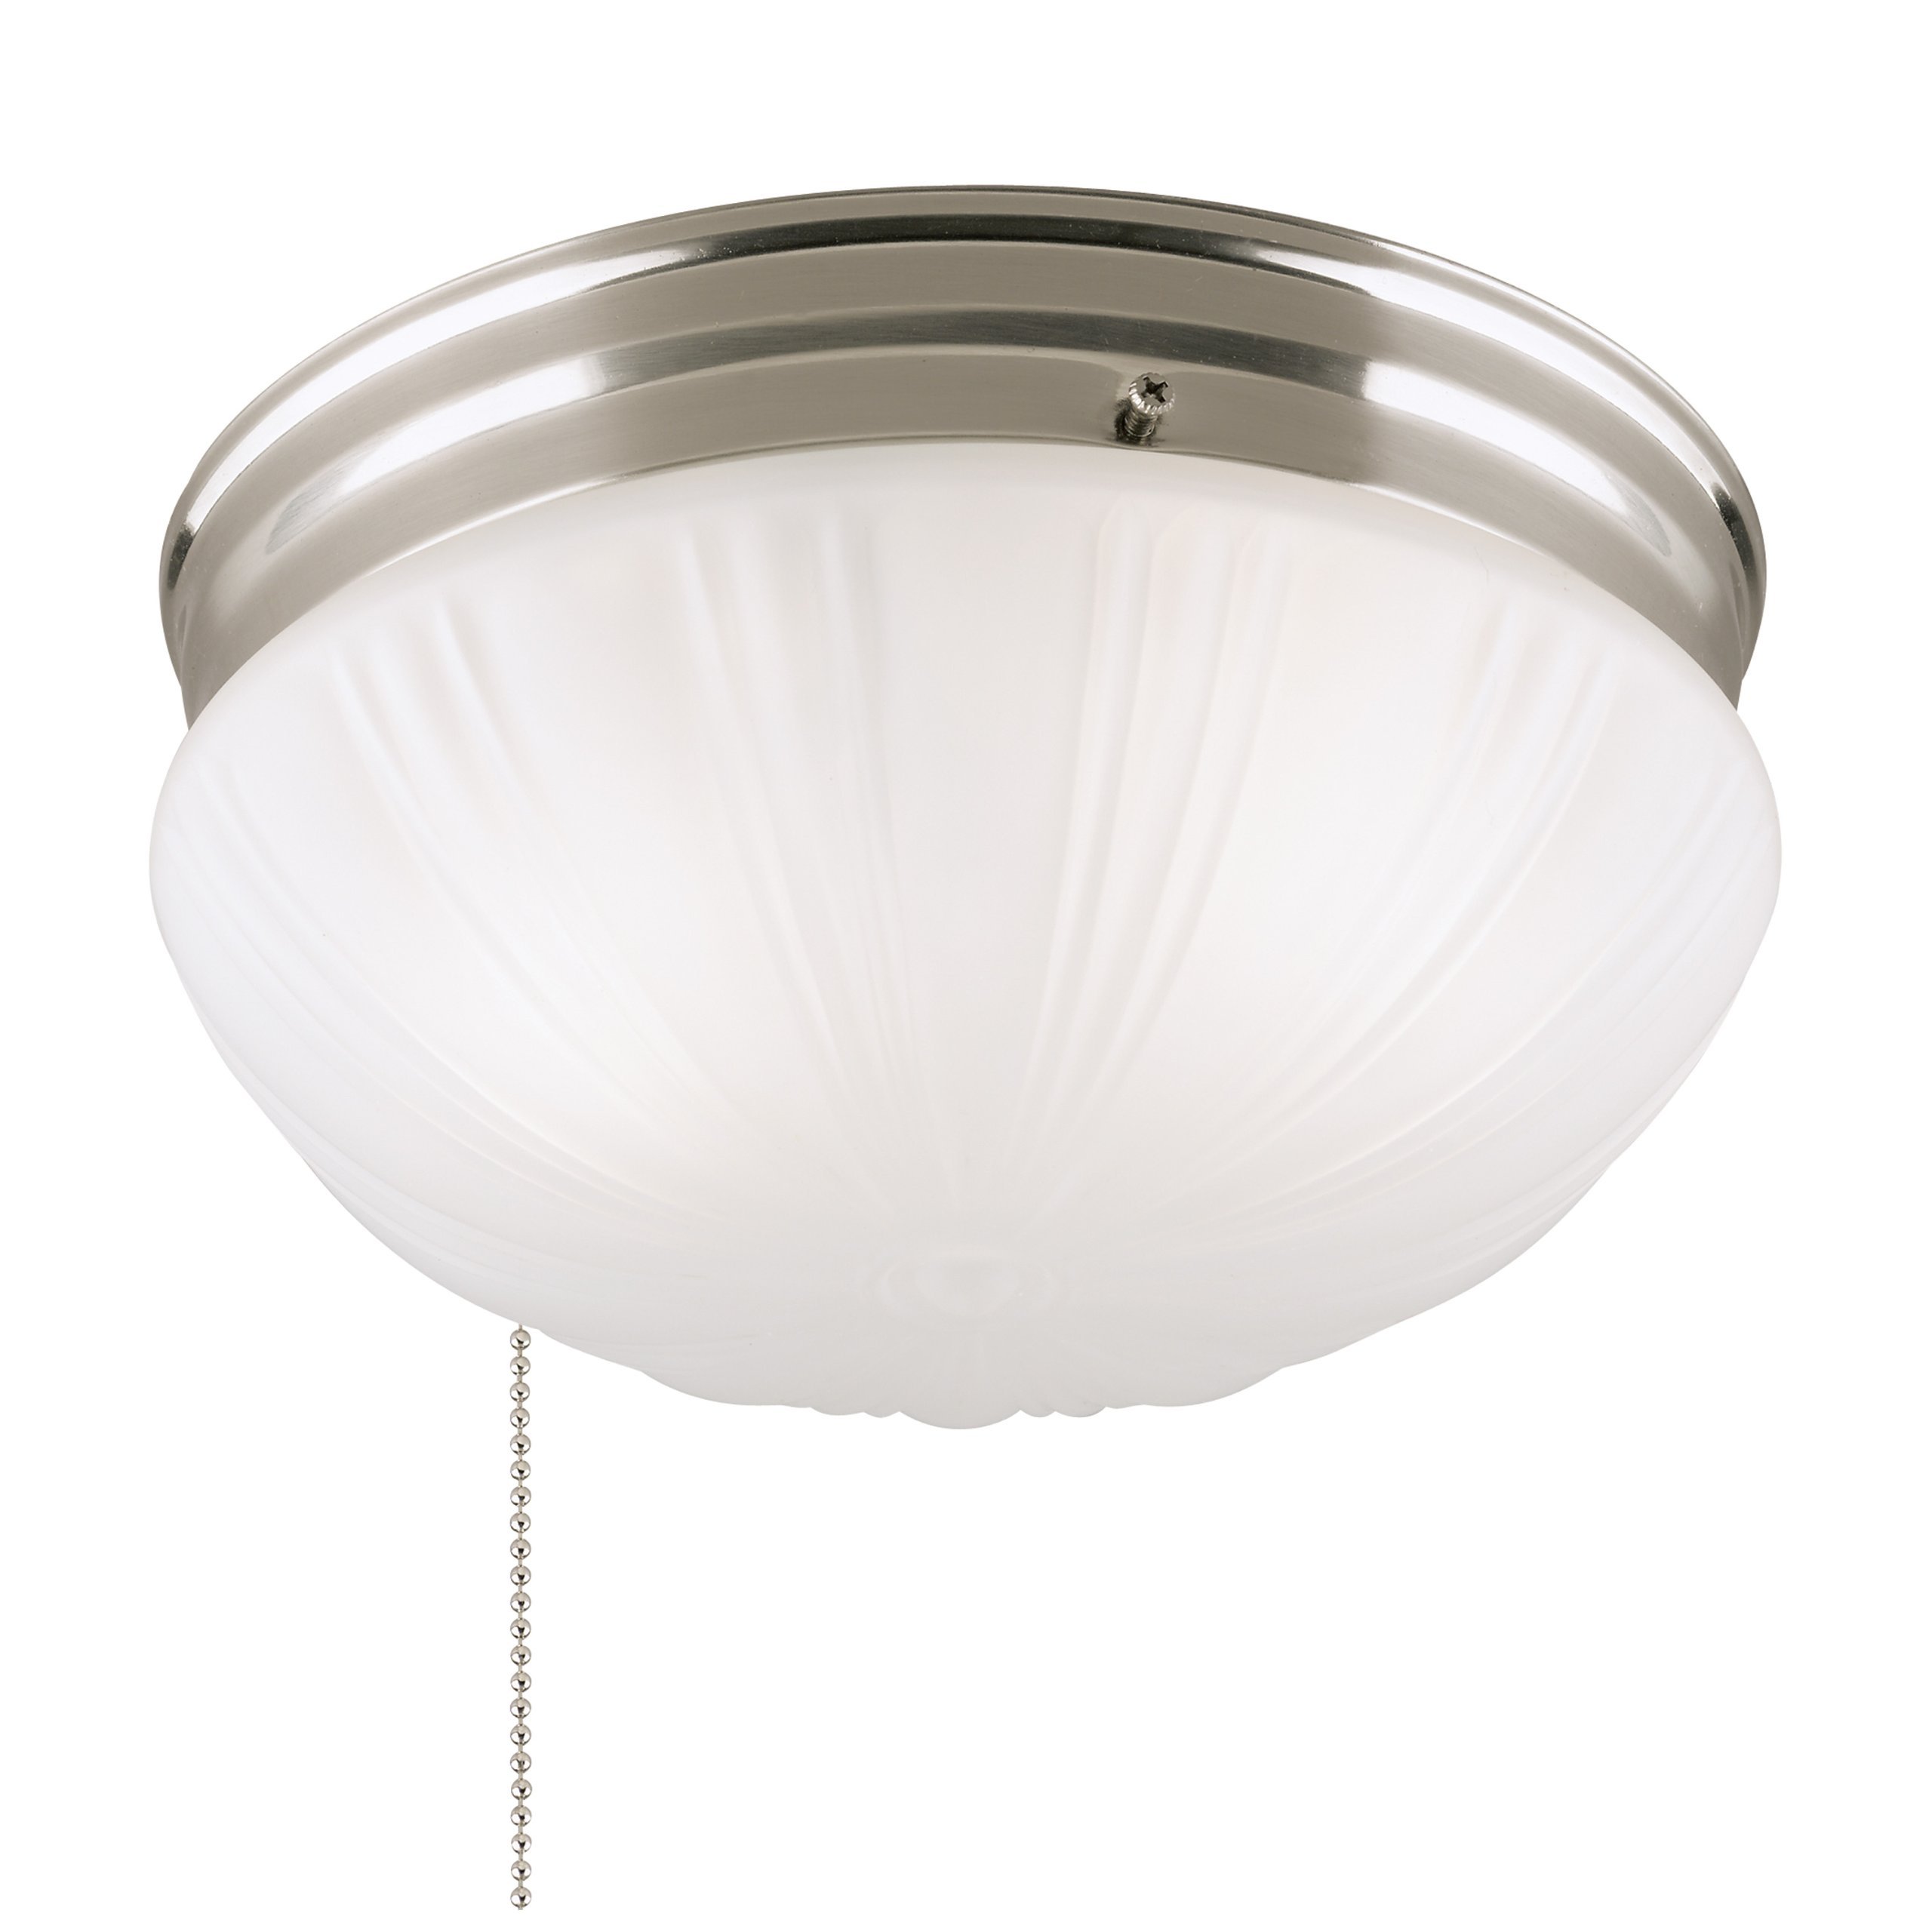 Westinghouse 6721000 Two-Light Flush-Mount Interior Ceiling Fixture with Pull Chain, Brushed Nickel Finish with Frosted Fluted Glass by Westinghouse